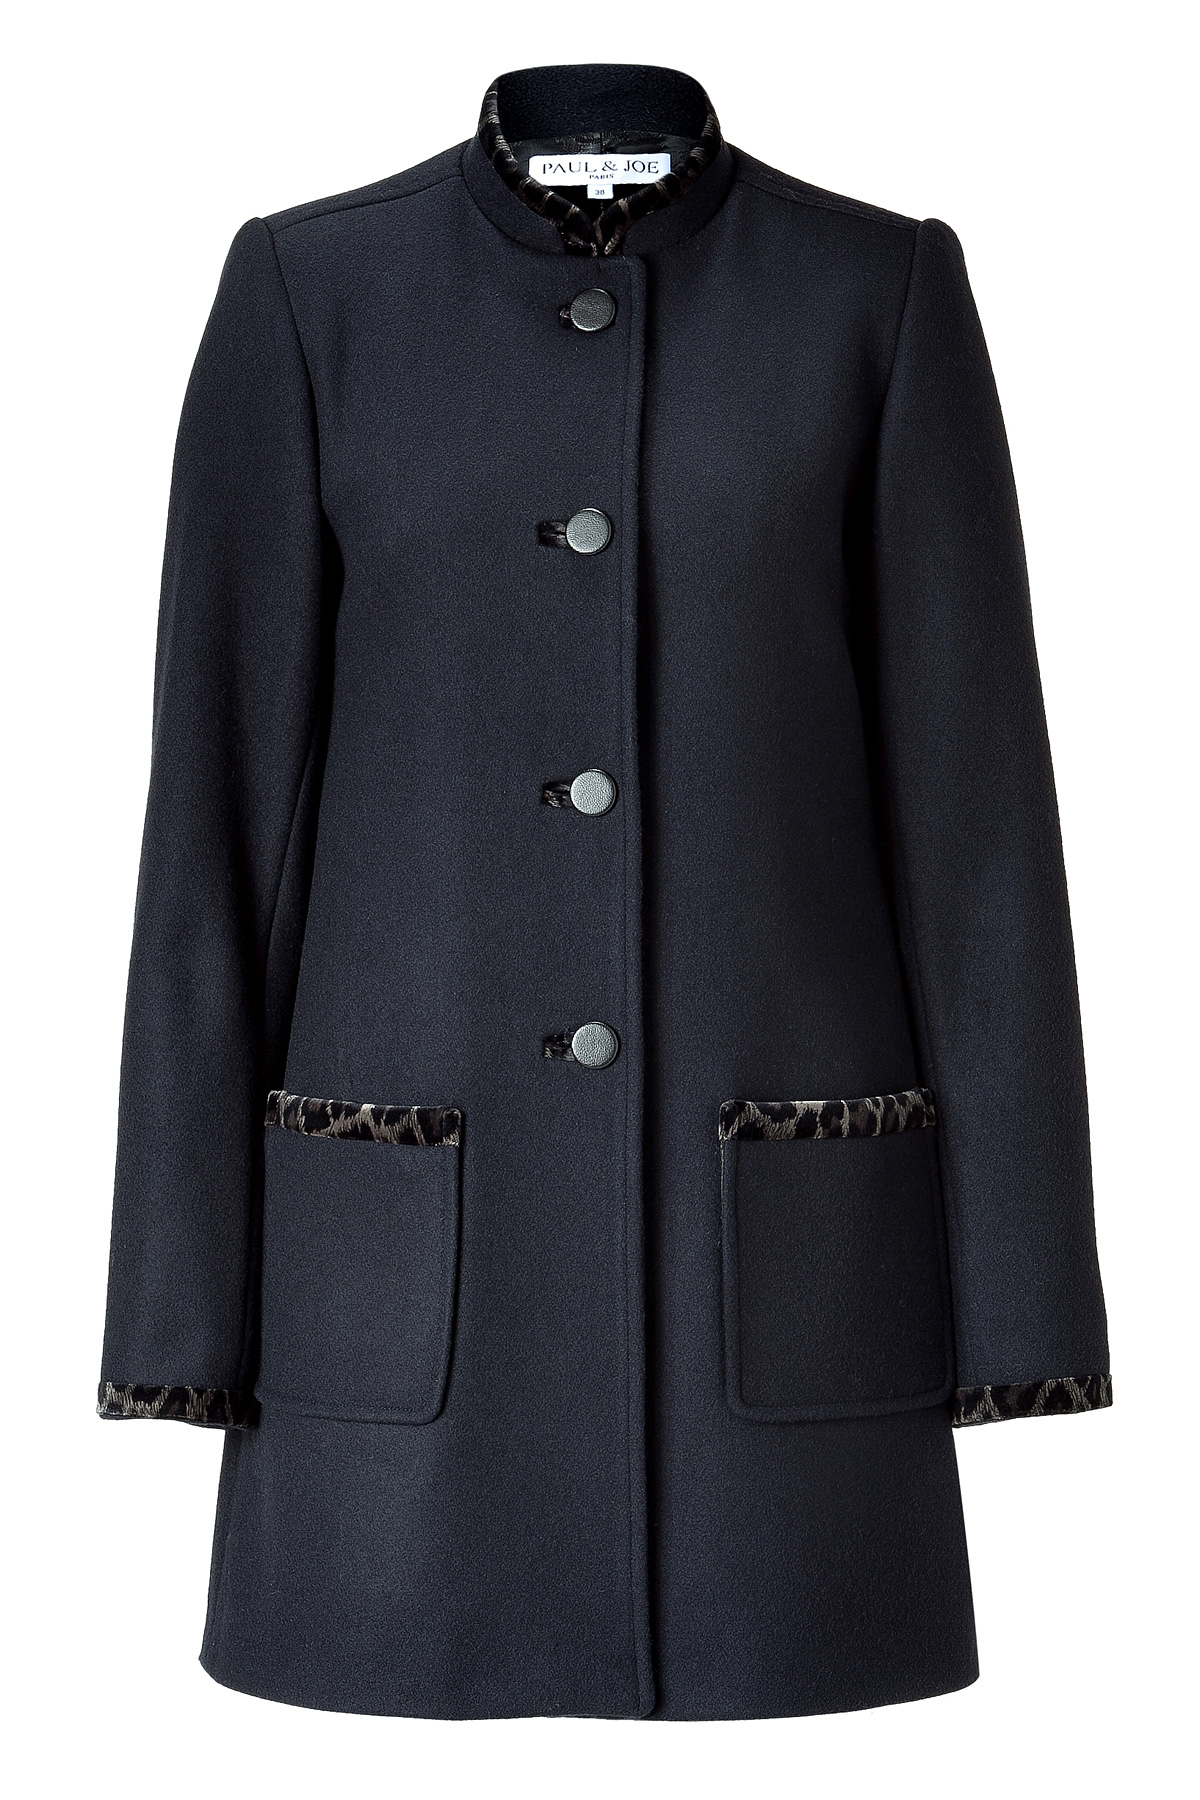 Paul Amp Joe Marine Coat With Stand Up Collar In Blue